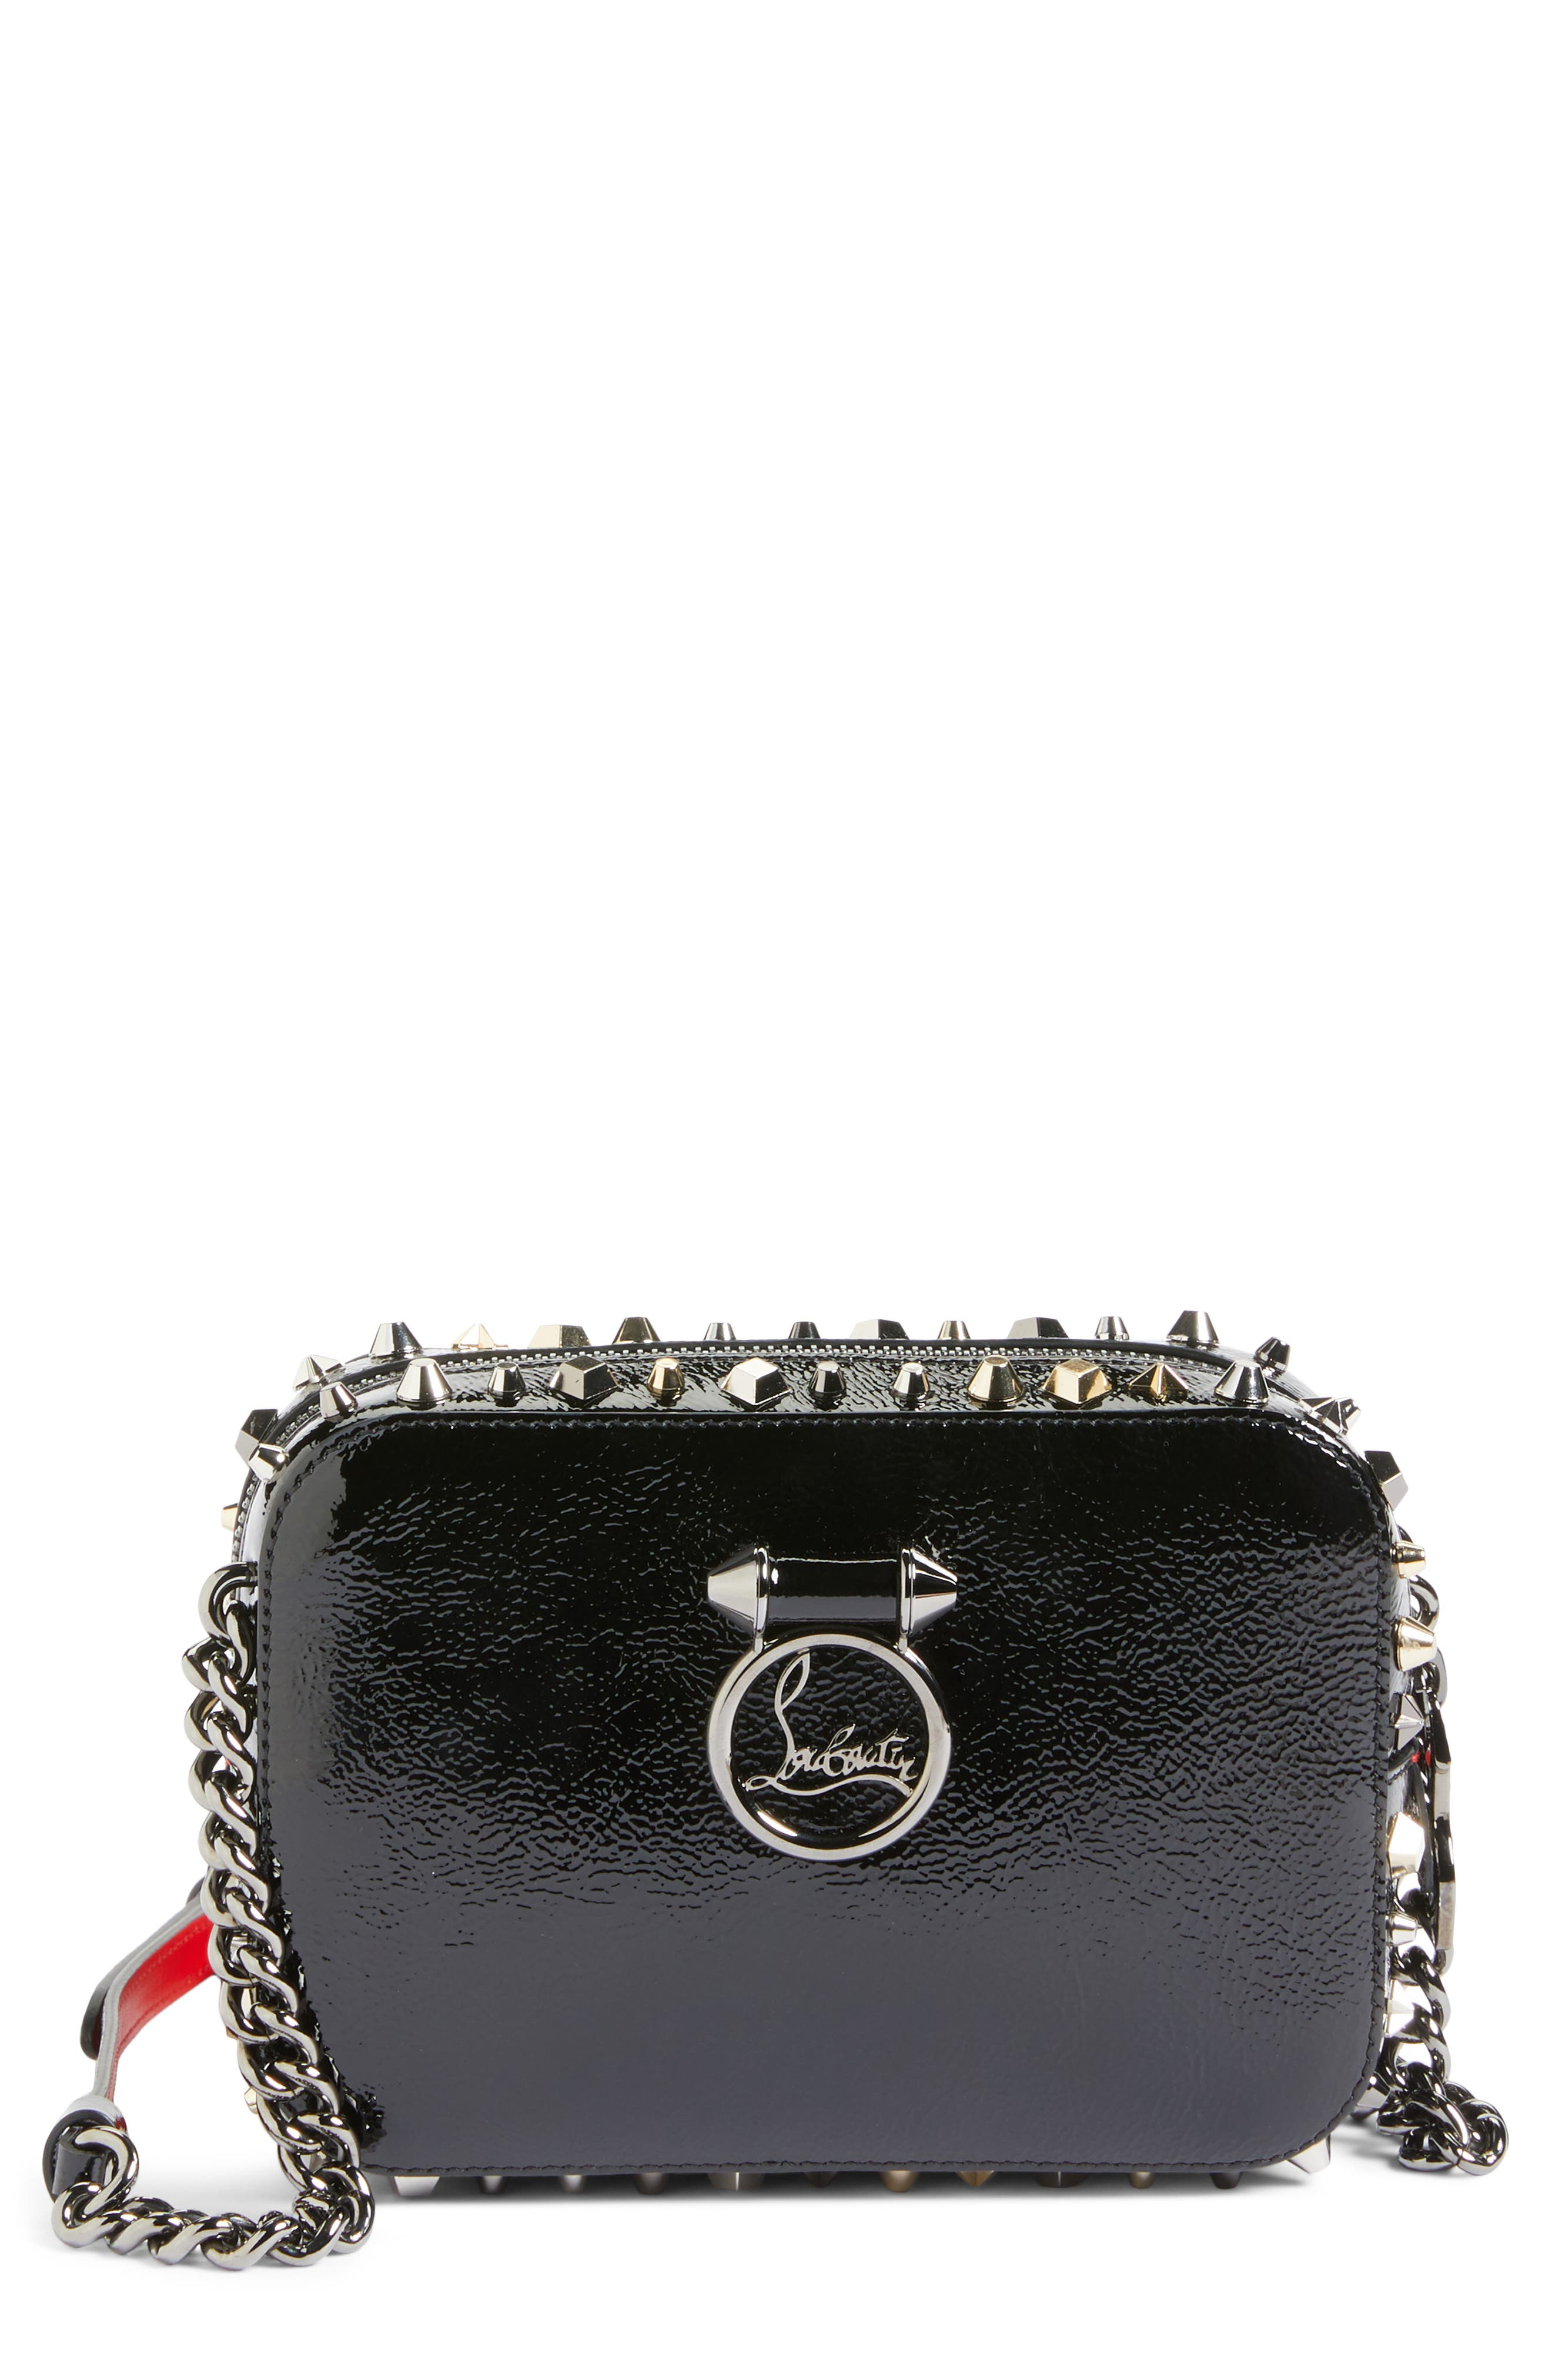 Christian Louboutin Mini Rubylou Patent Leather Crossbody Bag